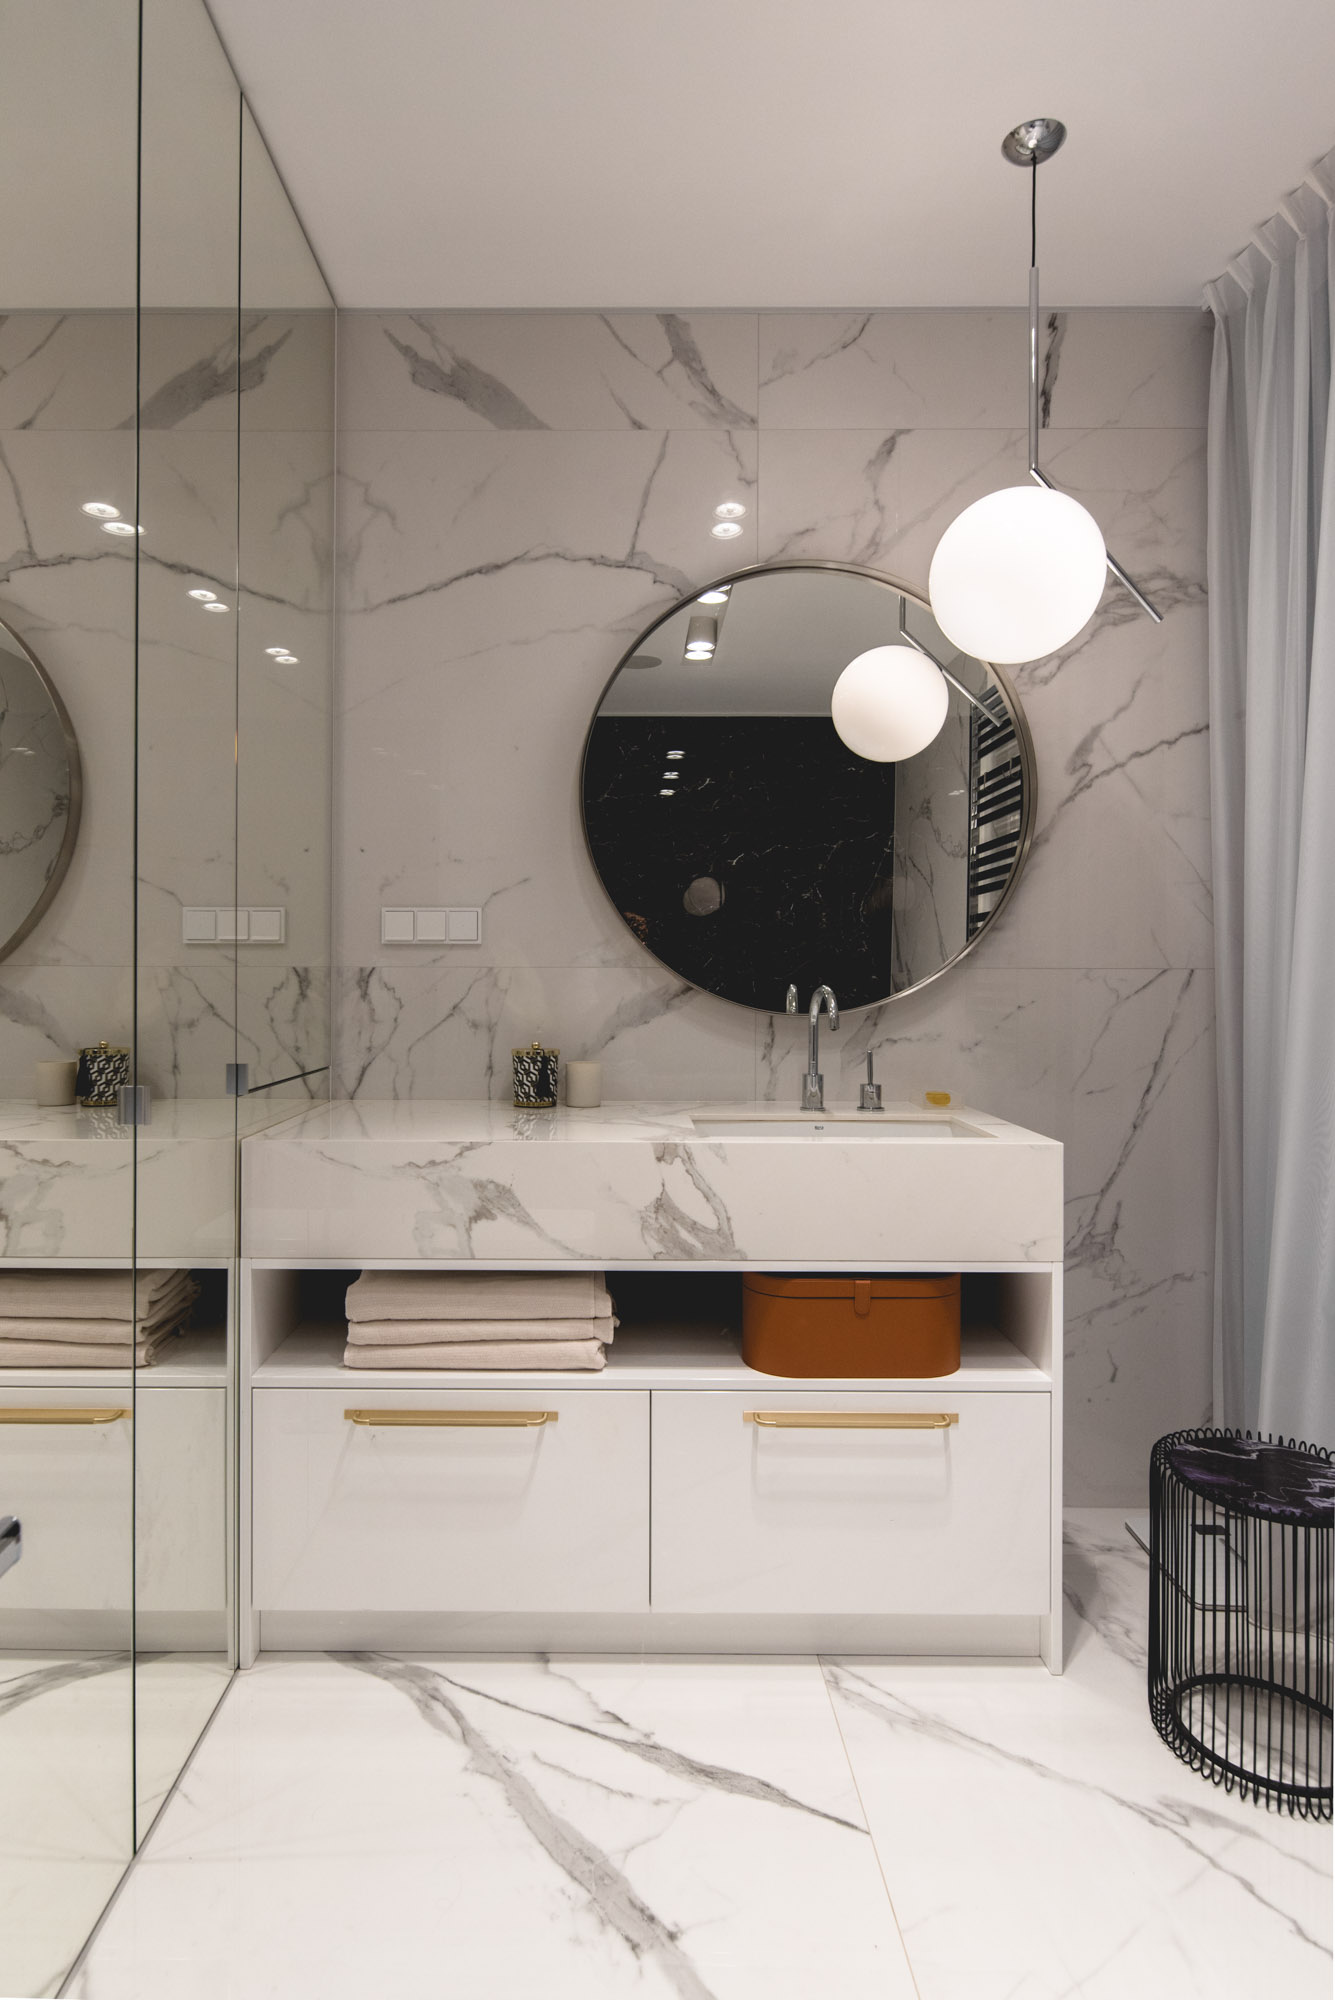 In this modern bathroom, stone covers the walls and the vanity, while the round mirror and pendant light add a curved element.